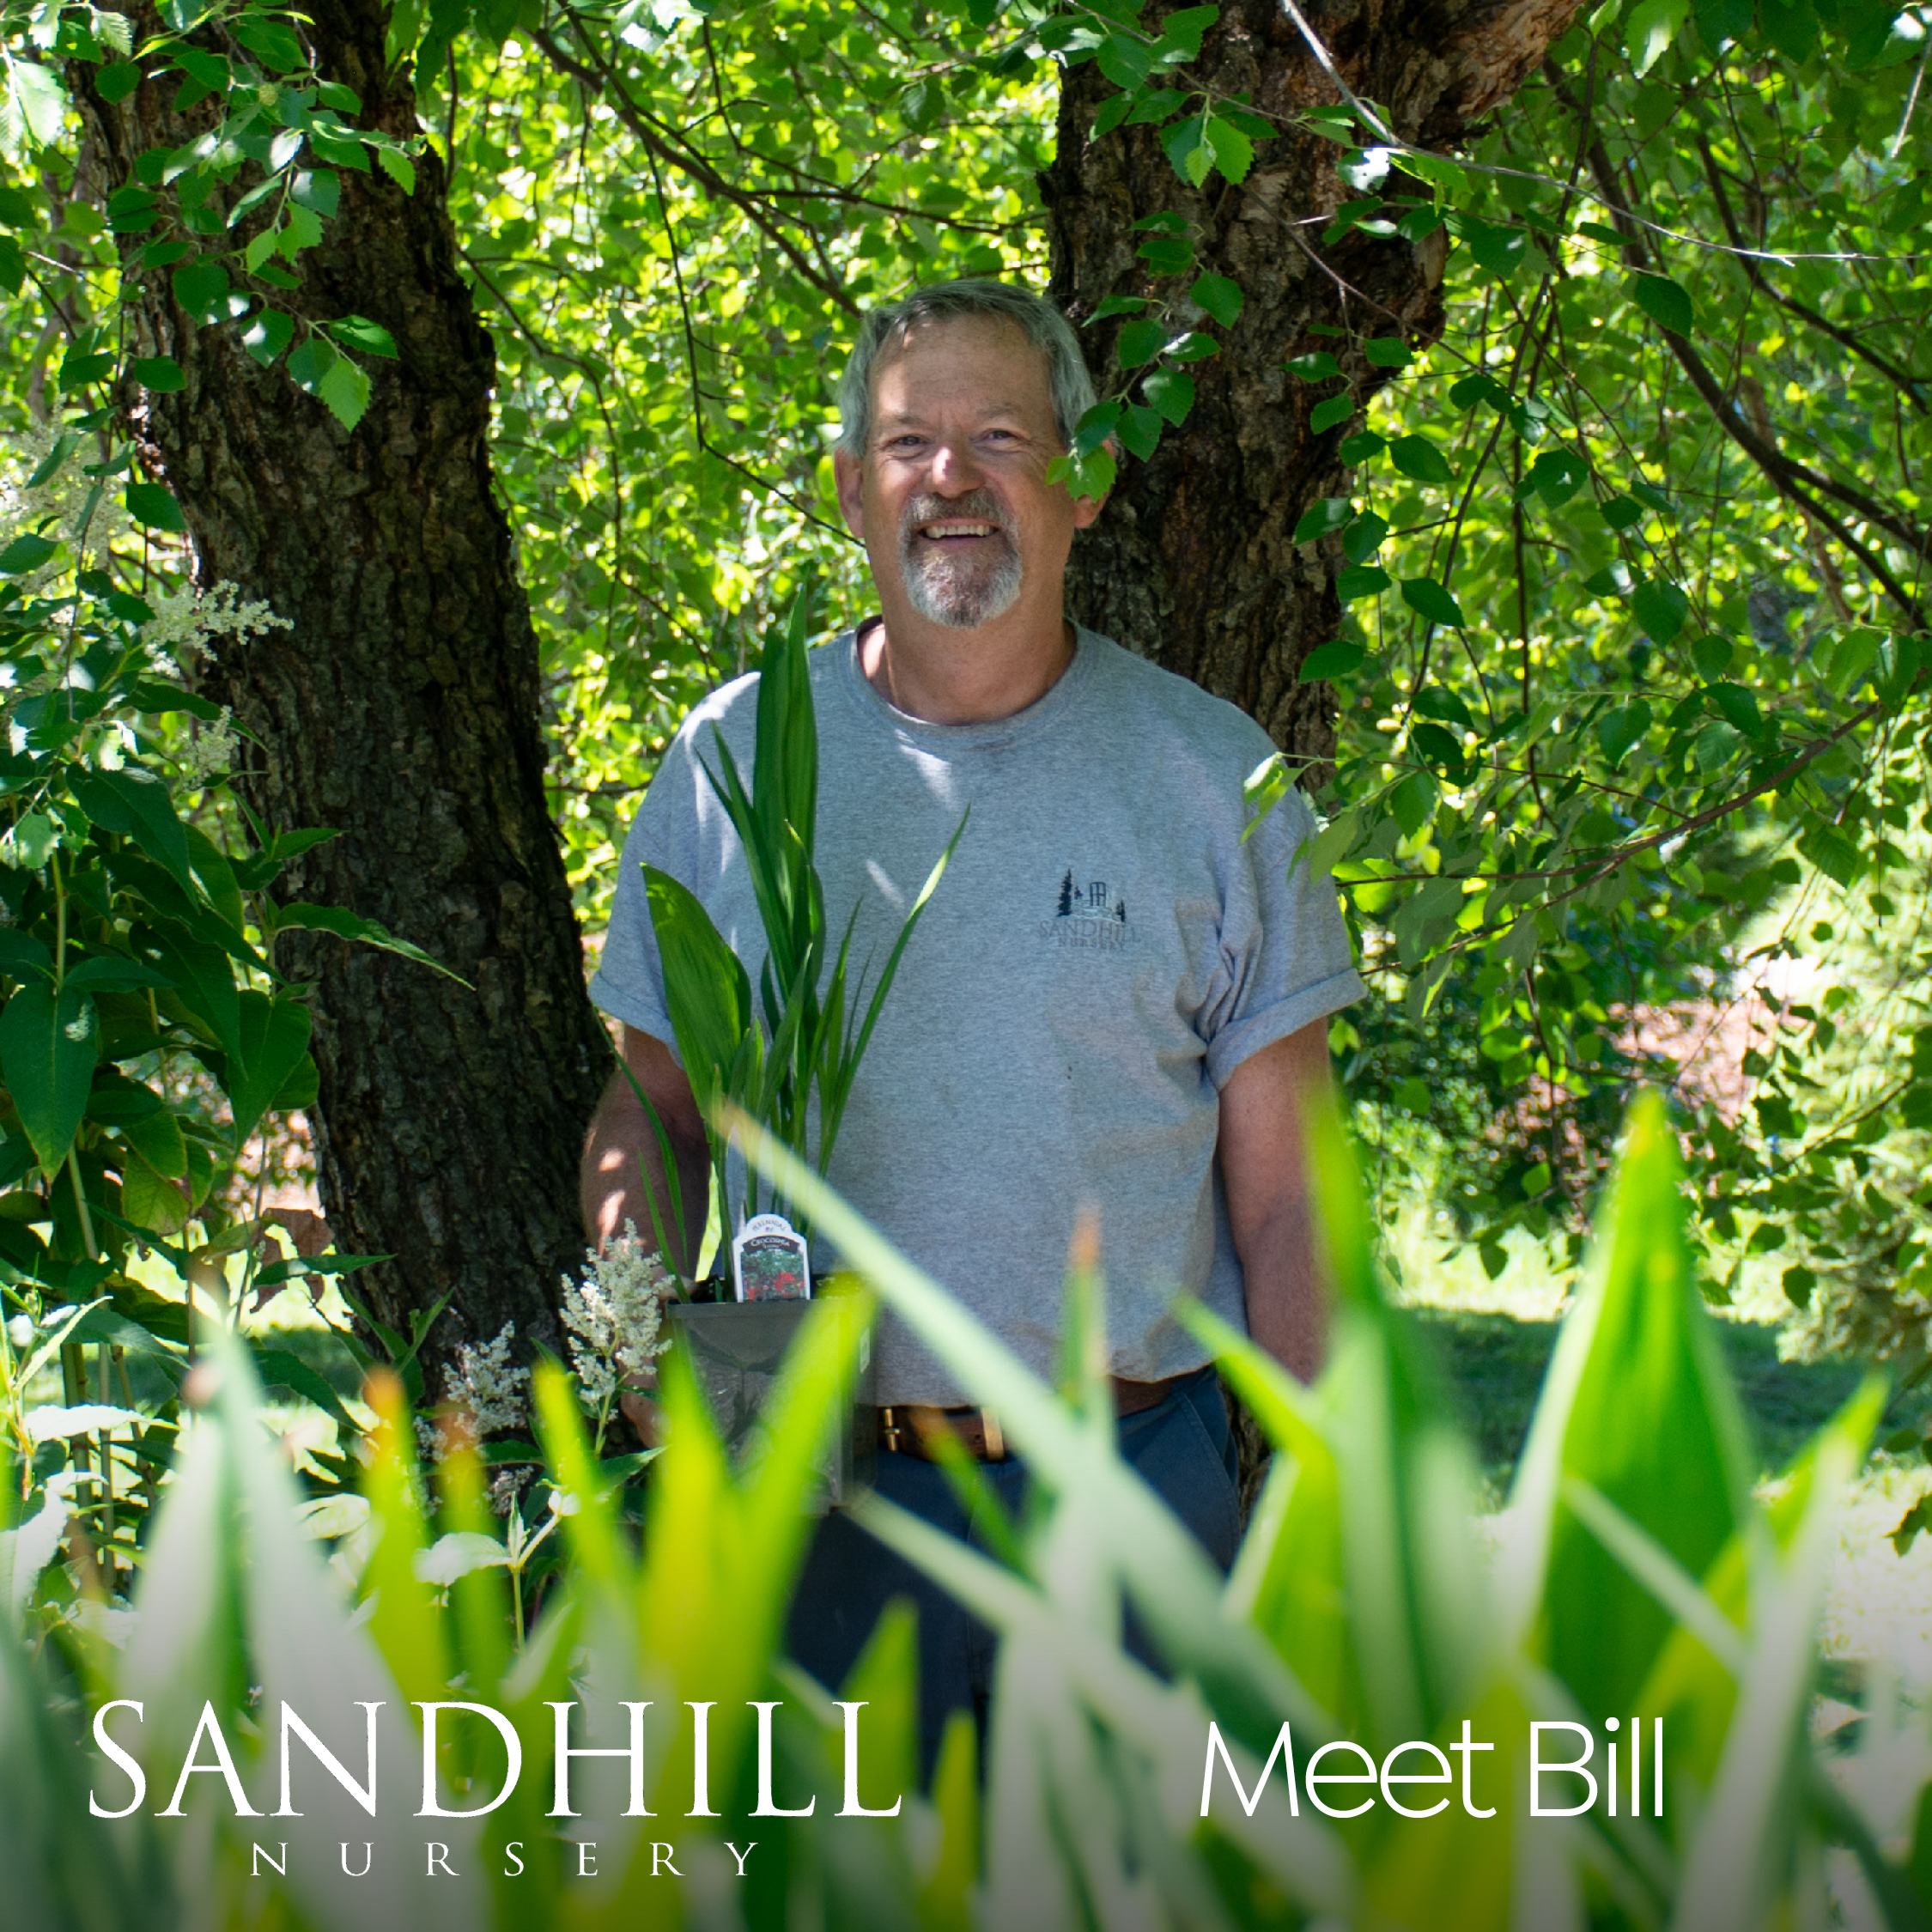 For Sandhill staff, gardening advice comings naturally. Bill has been at the nursery for a few years now and has a passion for veggie gardens. Look for his friendly face for all your queries, from tomato troubles to perennial problems.